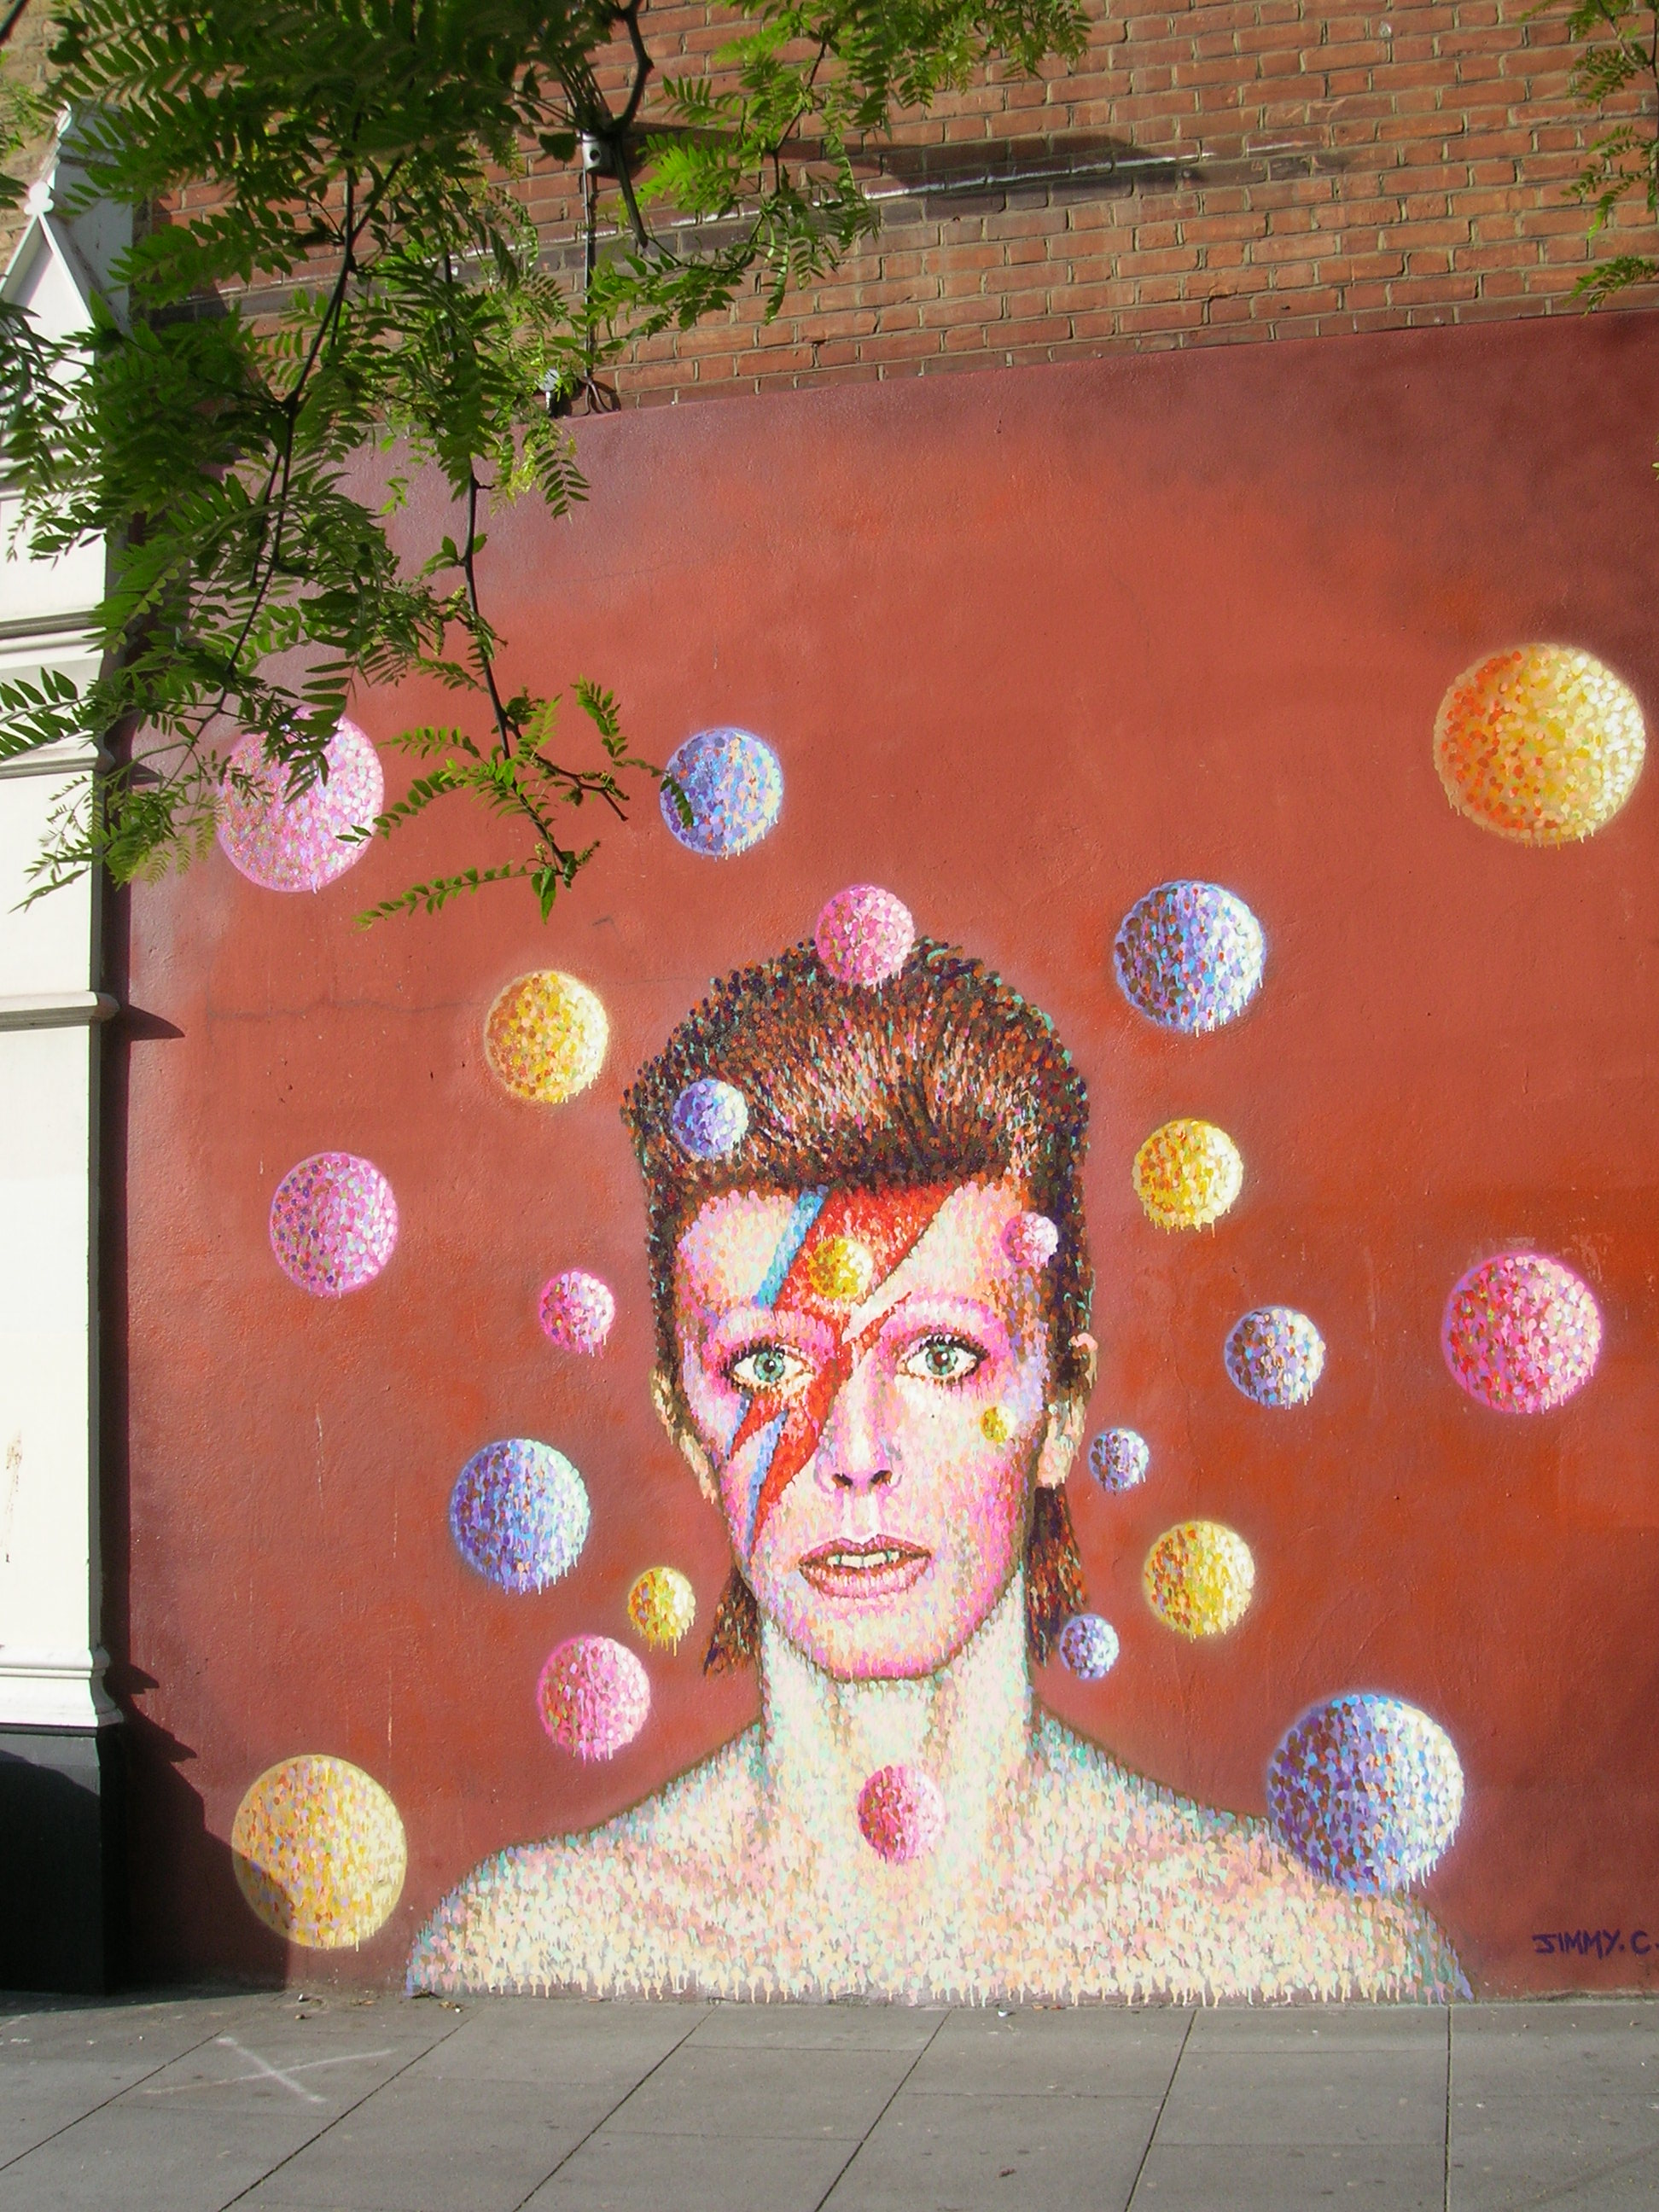 David Bowie Mural in Brixton by Ian Thirkettle